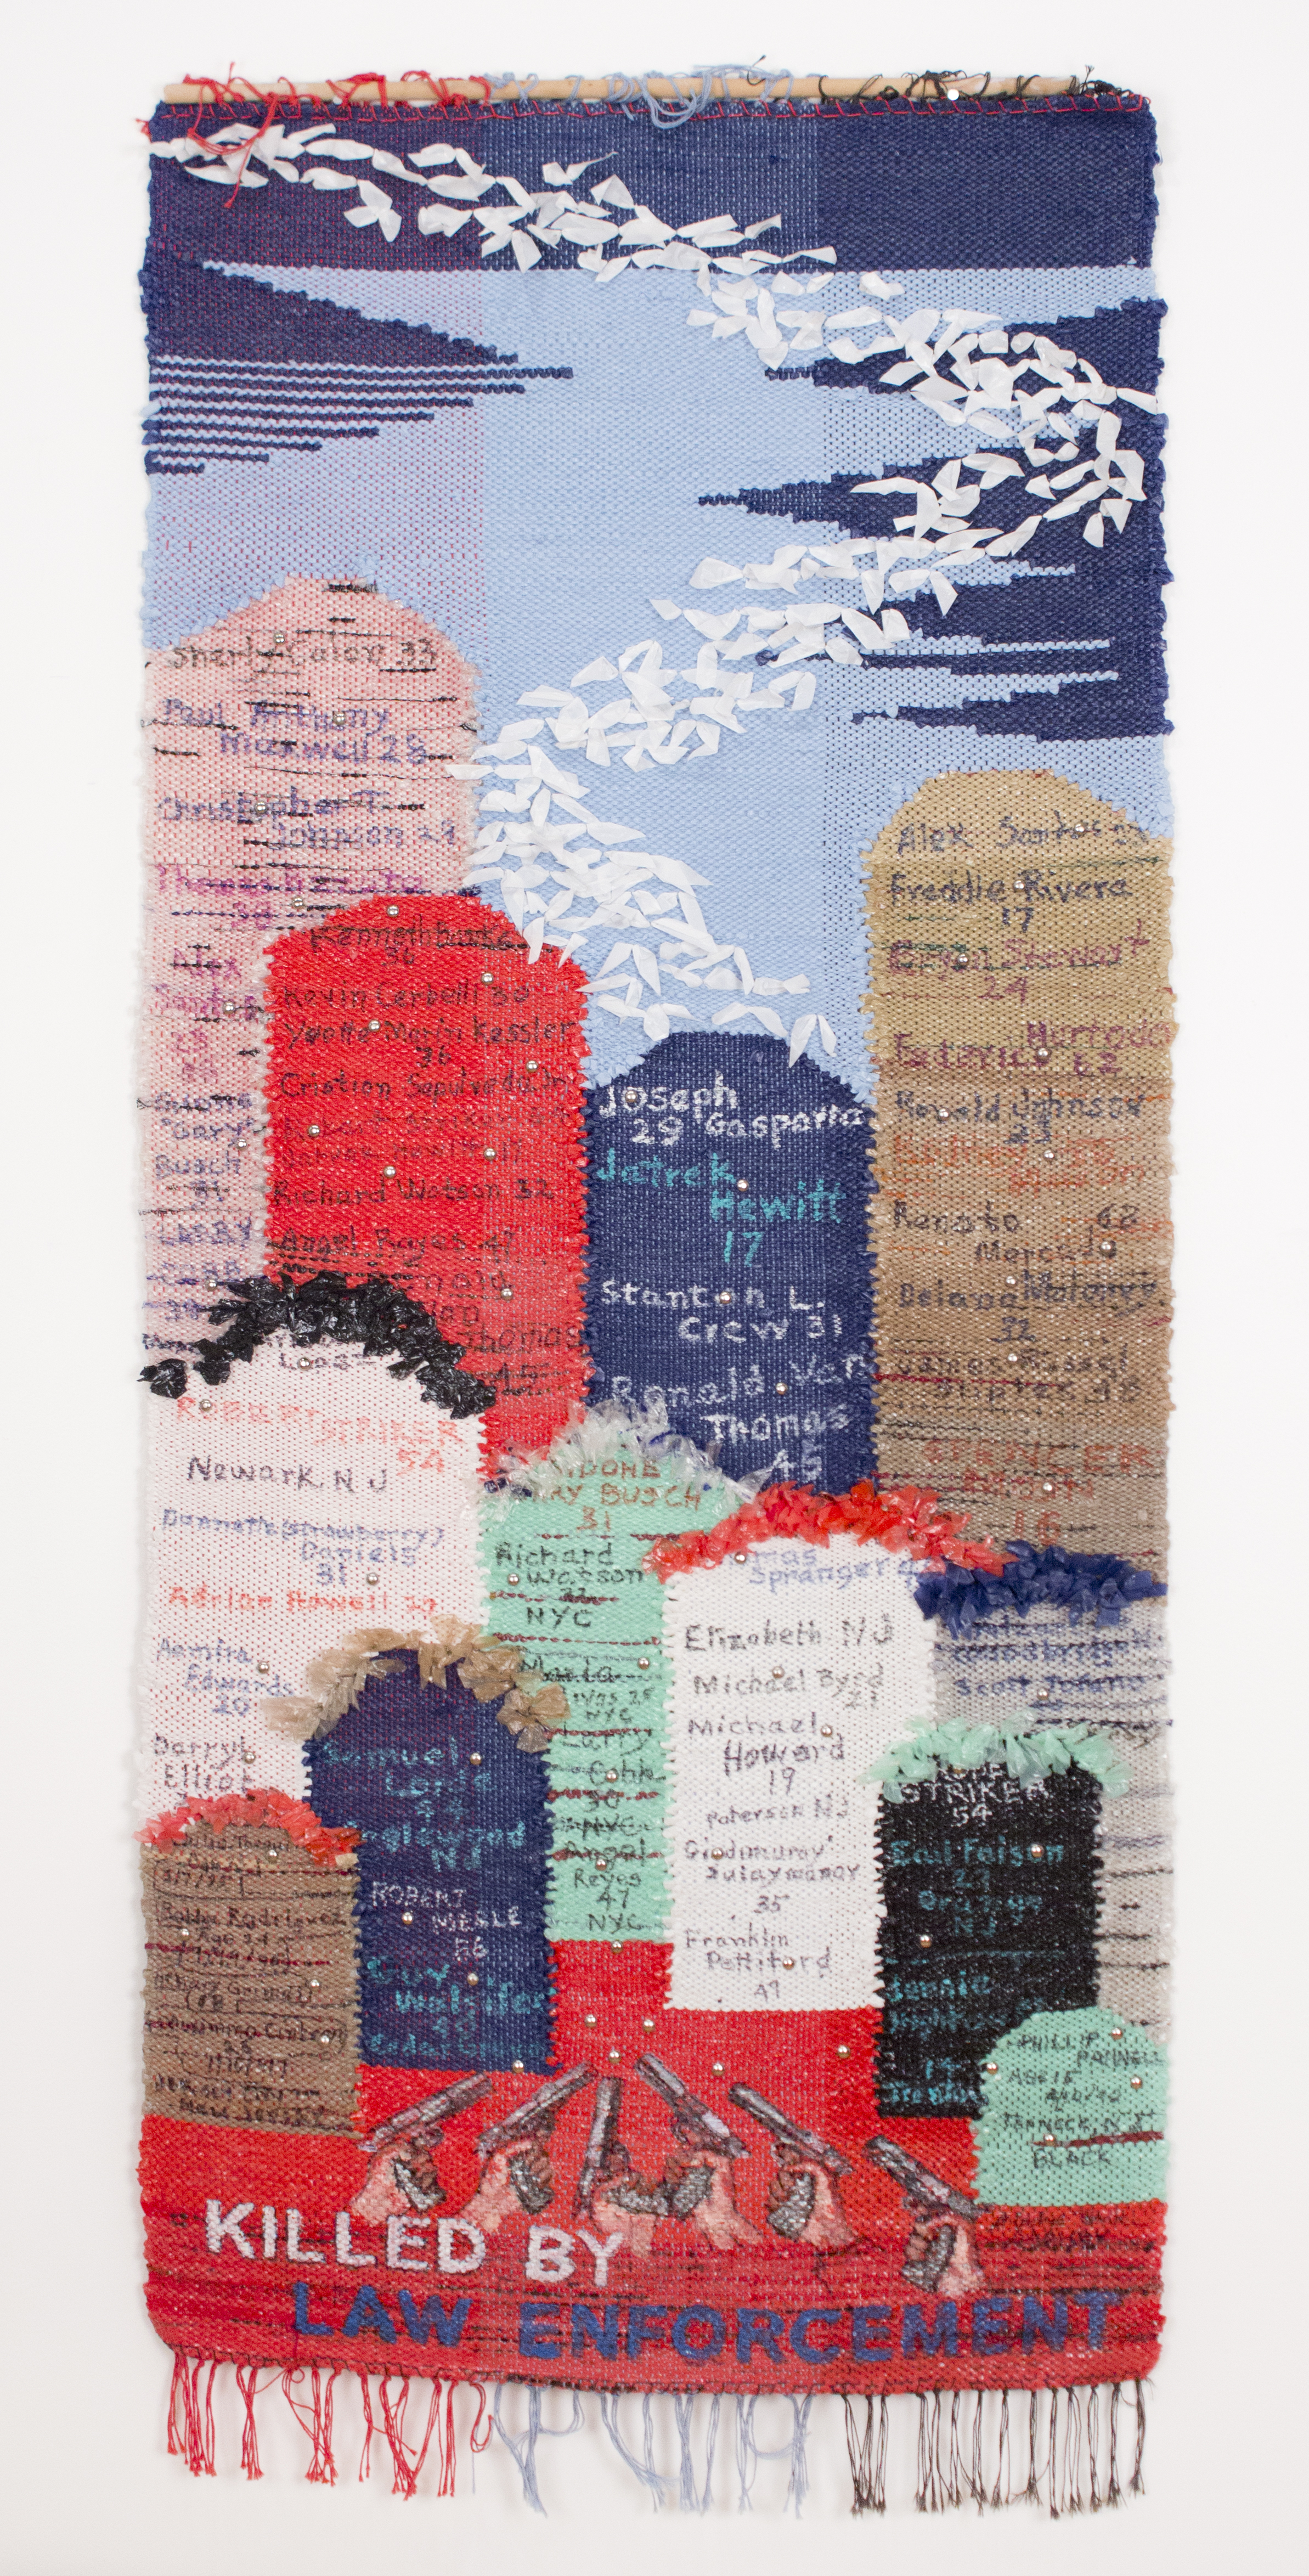 """""""Killed by Law Enforcement"""" 2013, Woven Plastic and Acrylic, 64.5x27.5IN"""